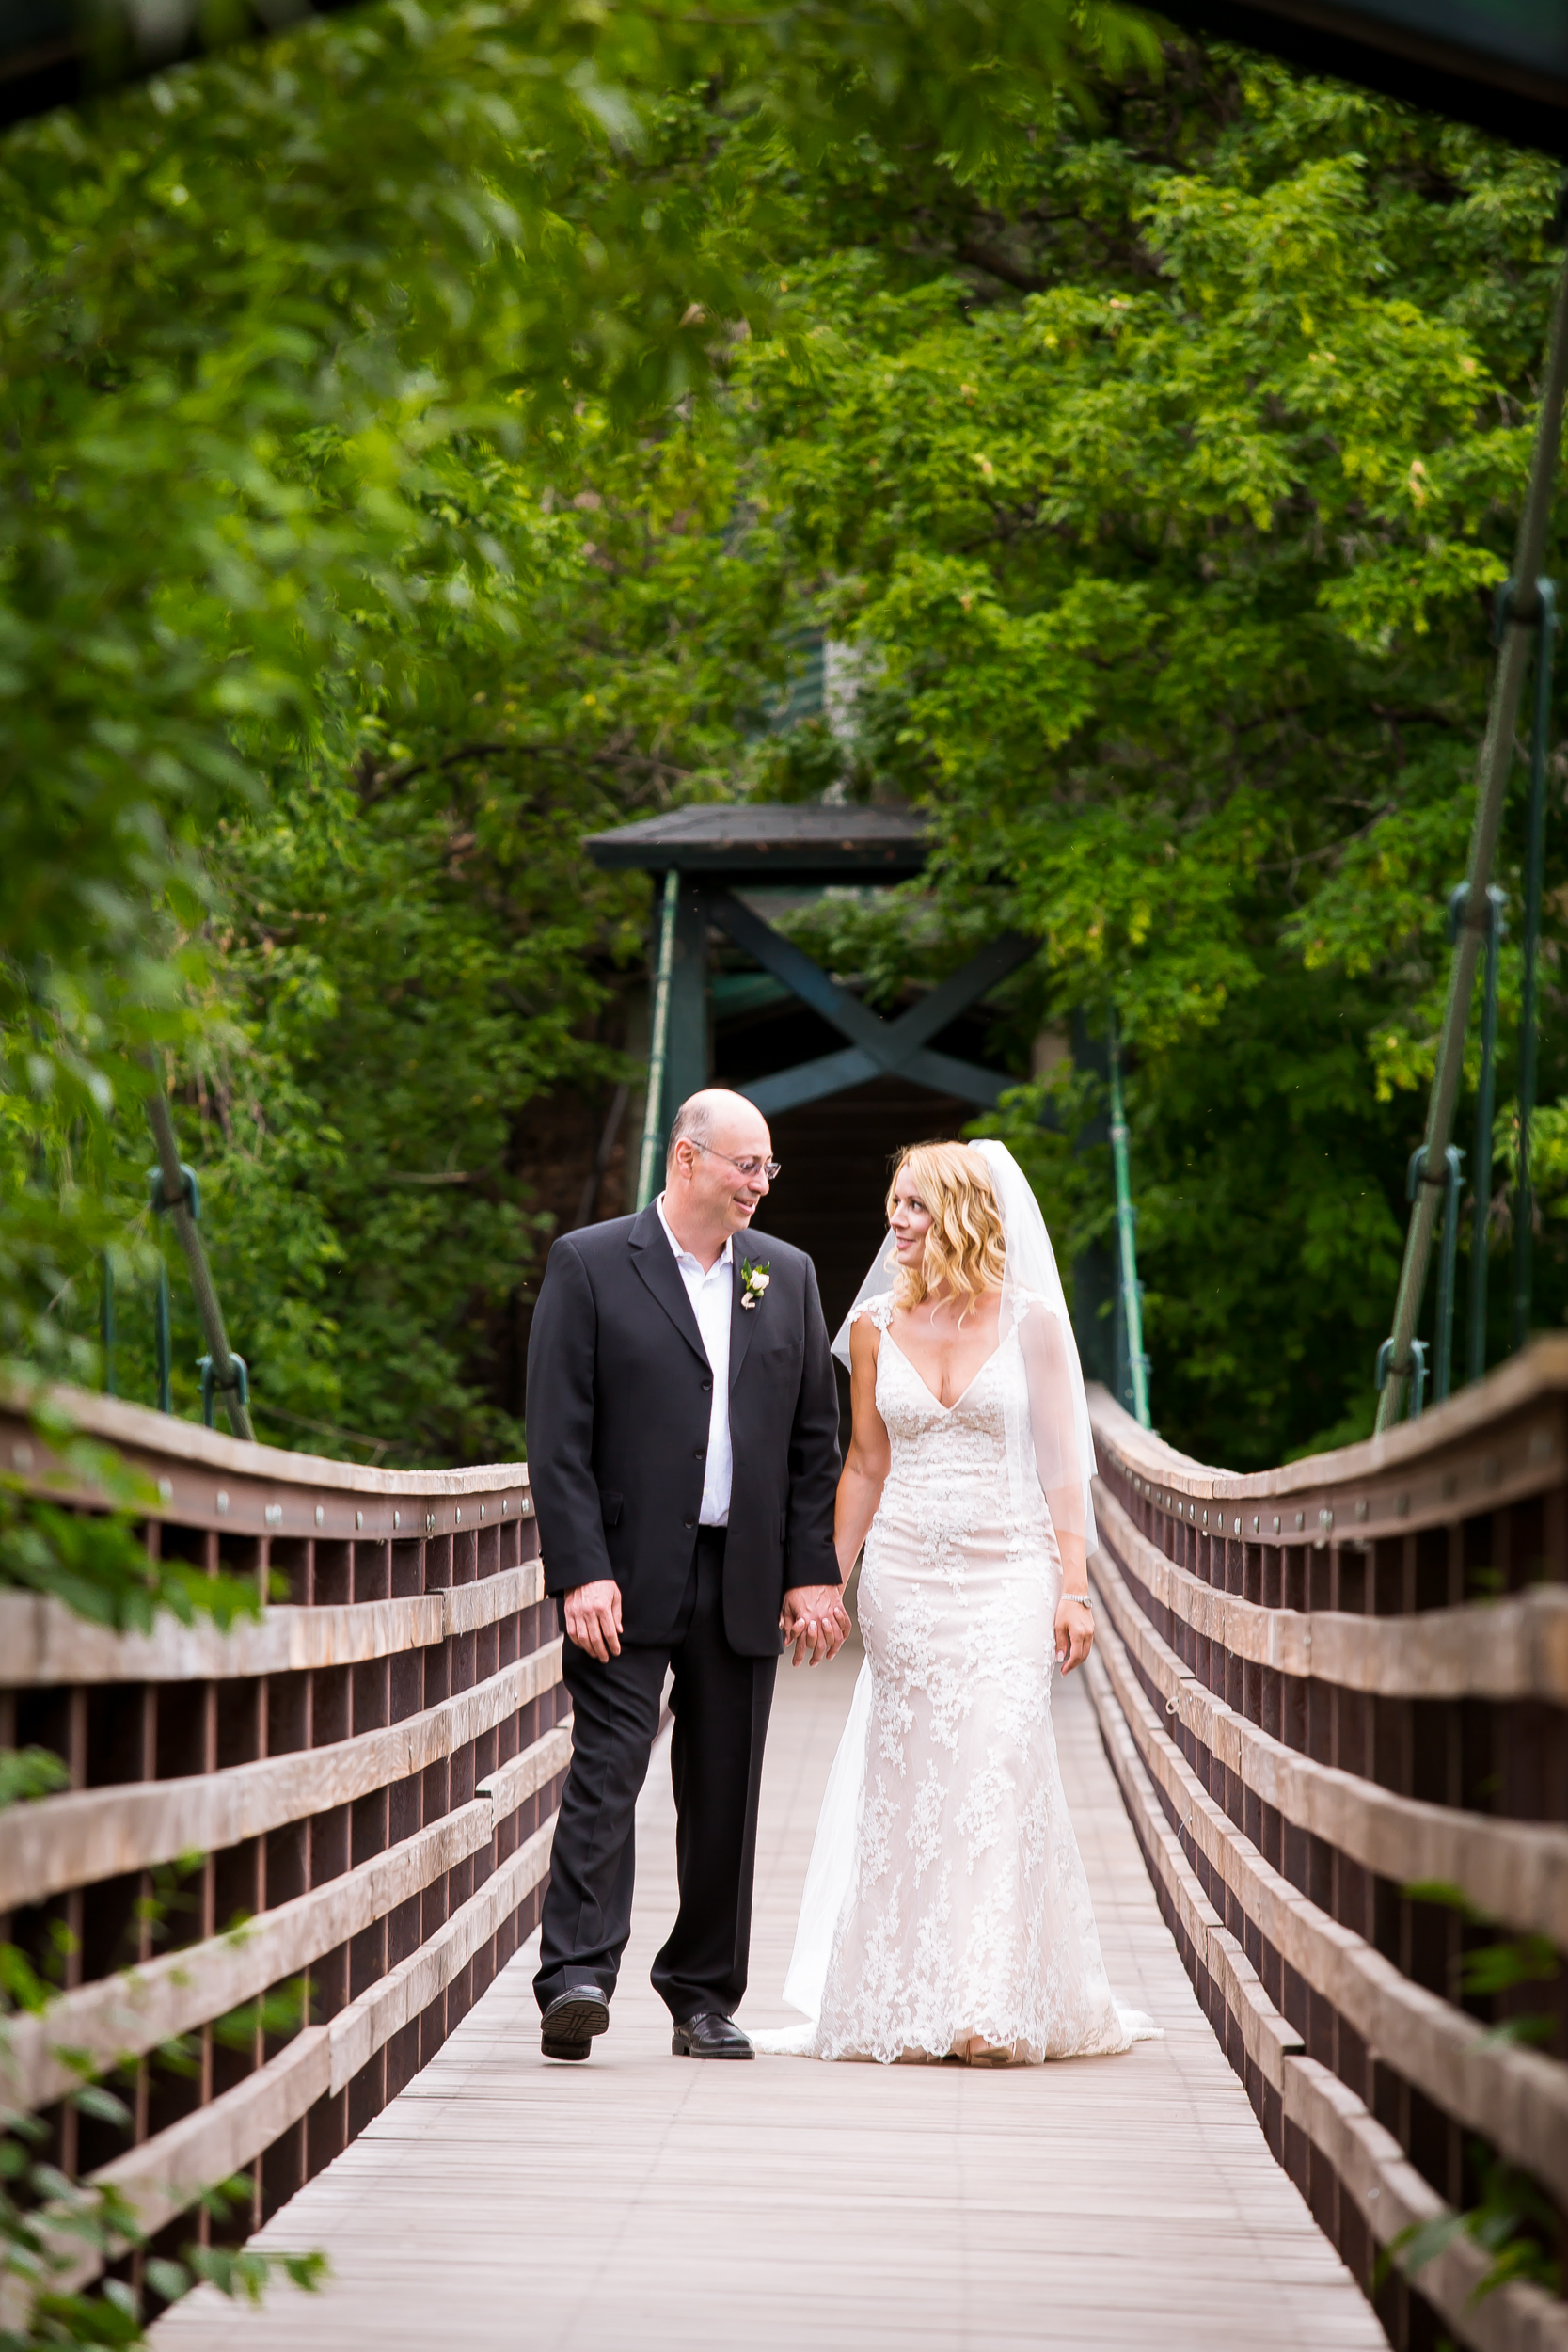 Powerhouse science center wedding  © Alexi Hubbell Photography 2018